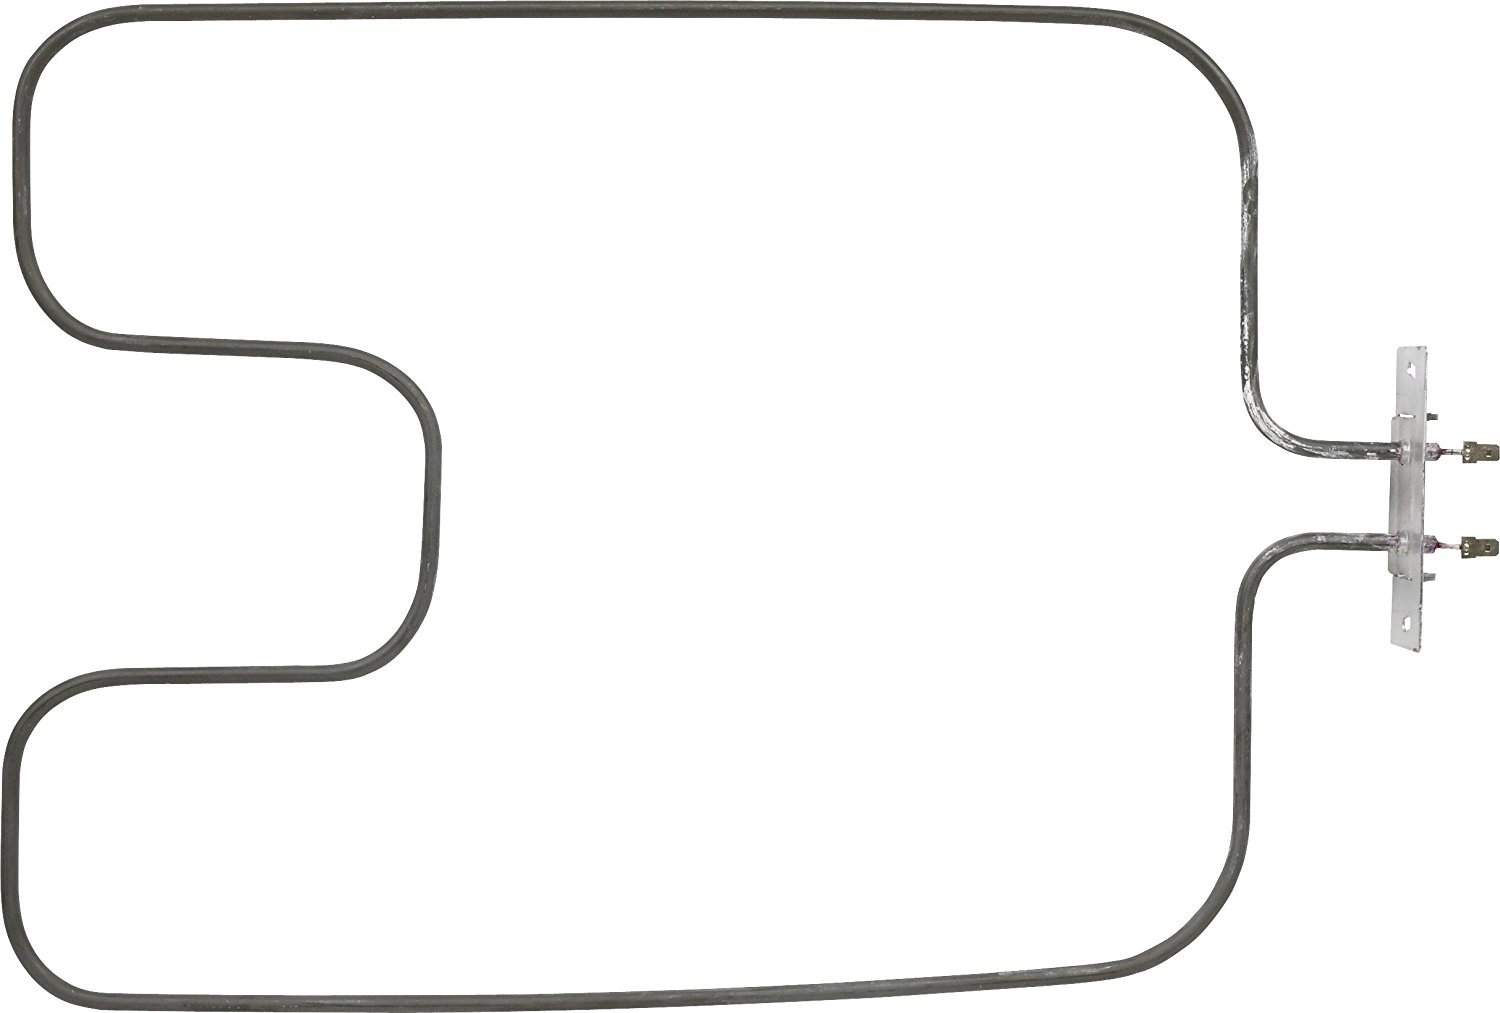 Edgewater Parts 5309950887 Oven Bake Element with Push-On Terminals 240V Compatible with Frigidaire, Kenmore, Tappan, and more